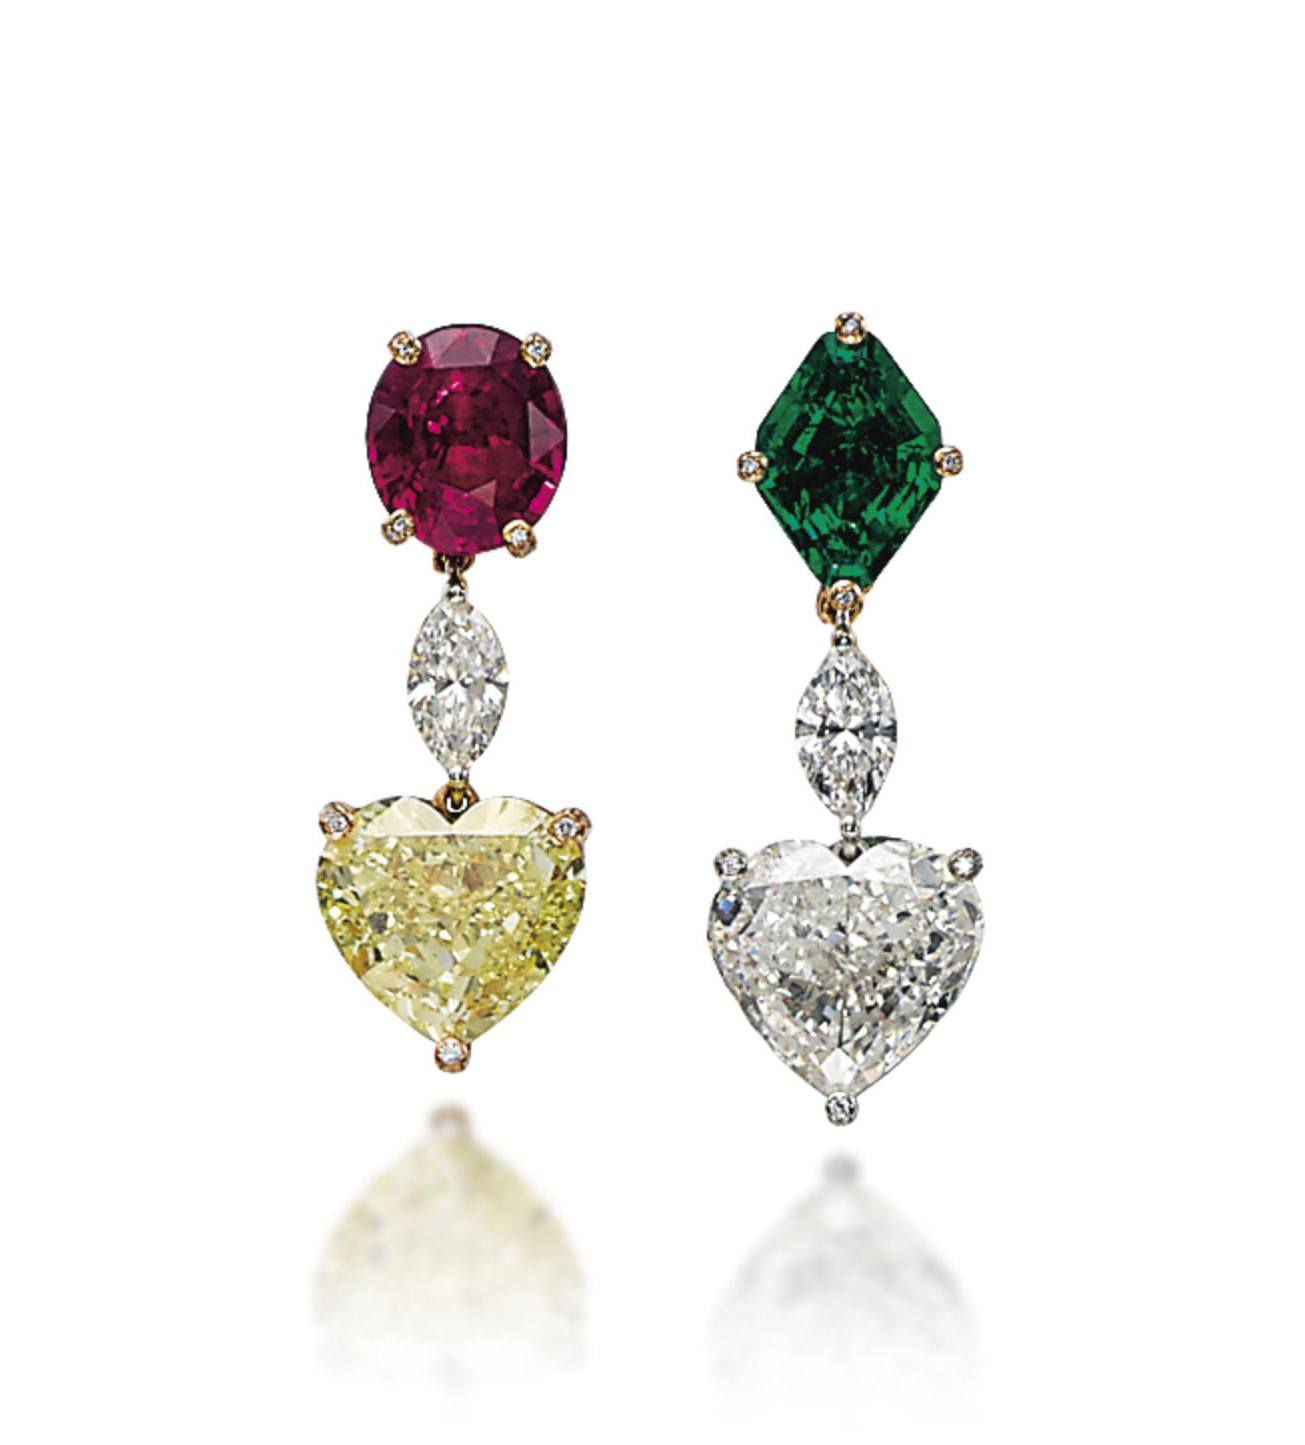 A PAIR OF DIAMOND, COLOURED DIAMOND, RUBY AND EMERALD EAR PENDANTS, BY DE GRISOGONO